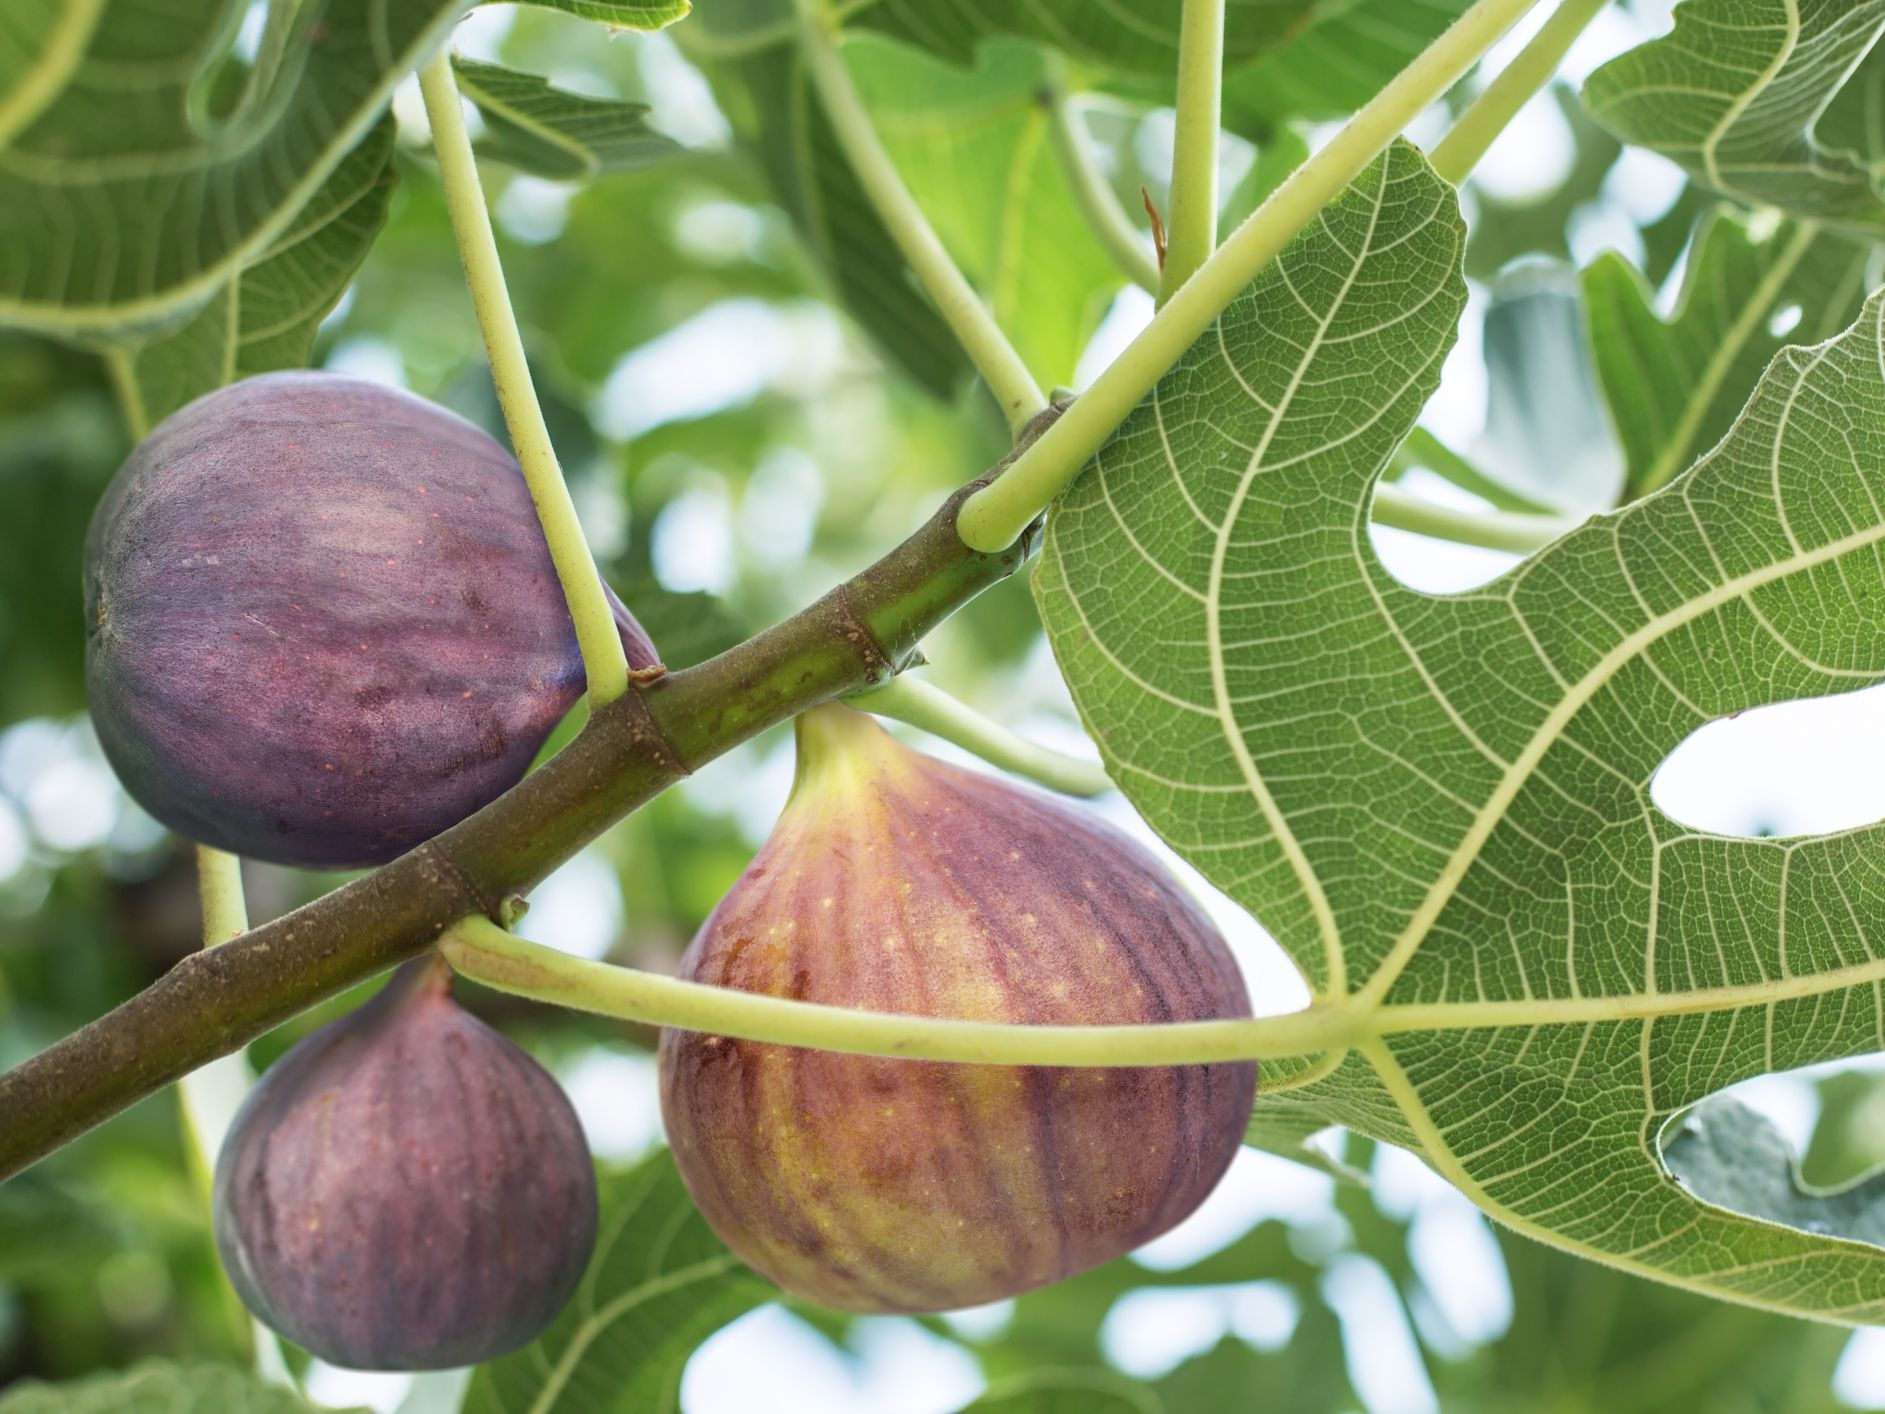 9 Species Of Fig Ficus Trees For Indoor And Outdoor Gardening,Steamed Broccoli Brockly